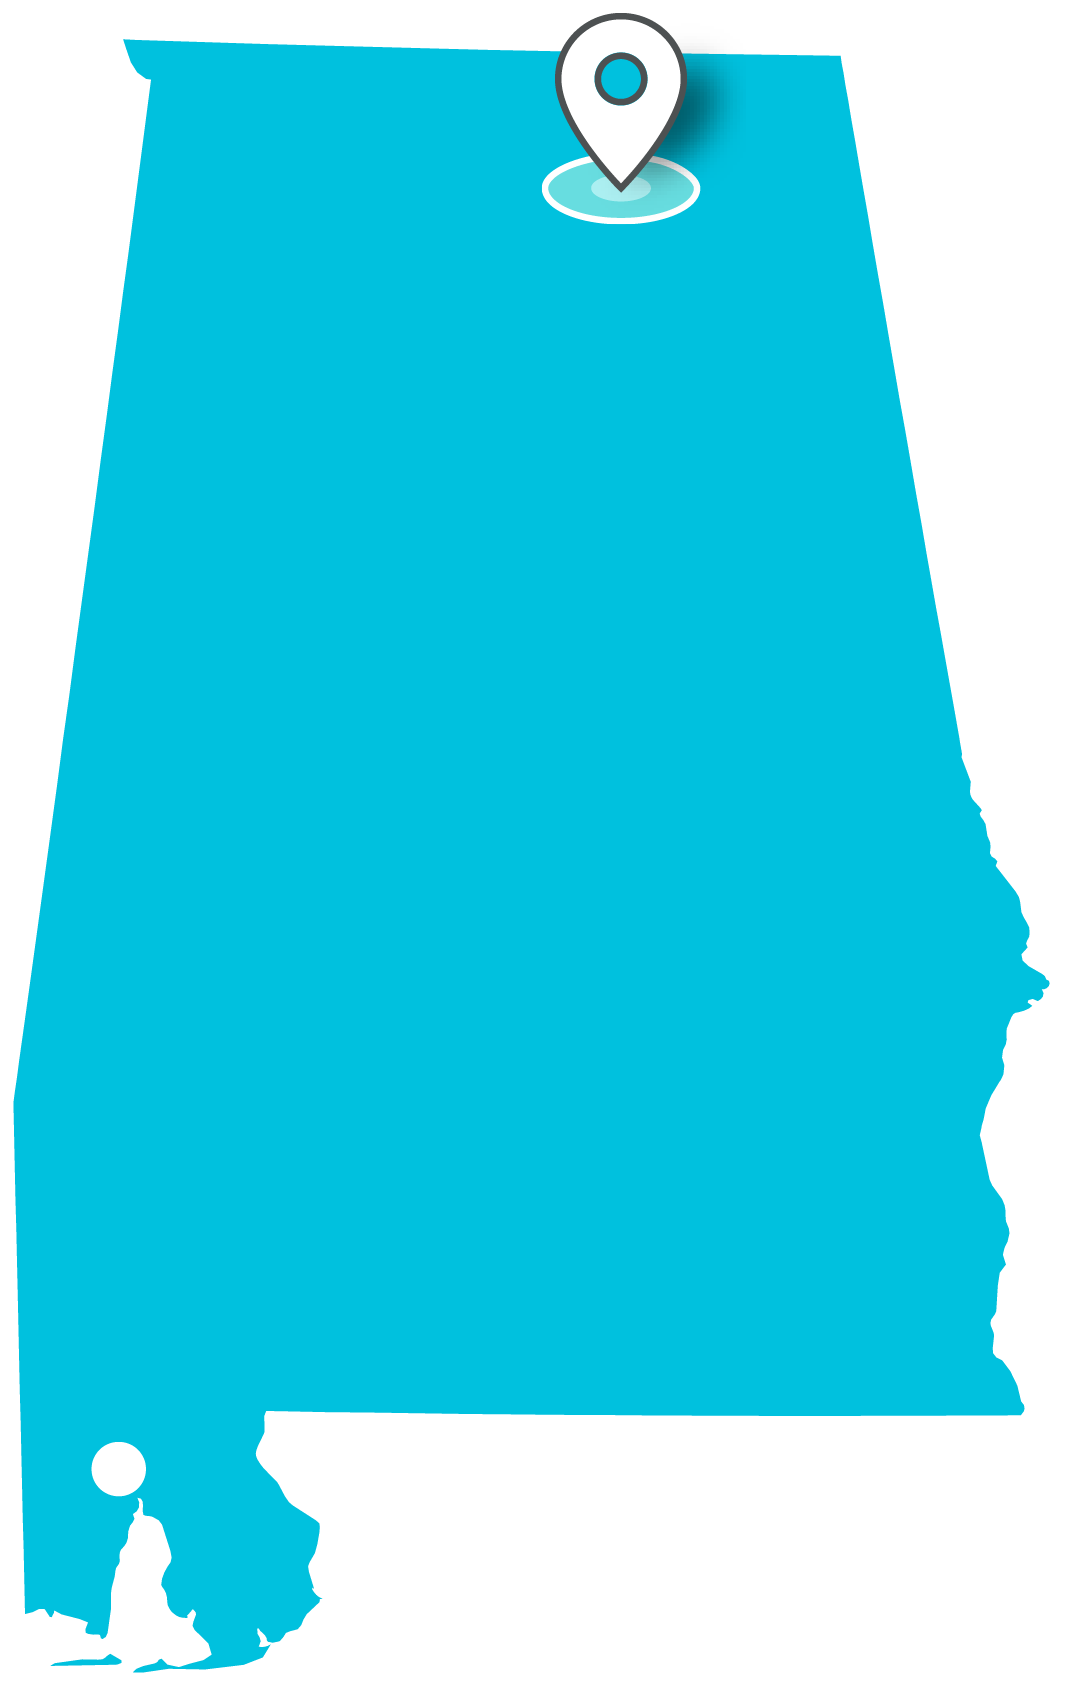 Alabama clipart cool. Locations teklinks map of